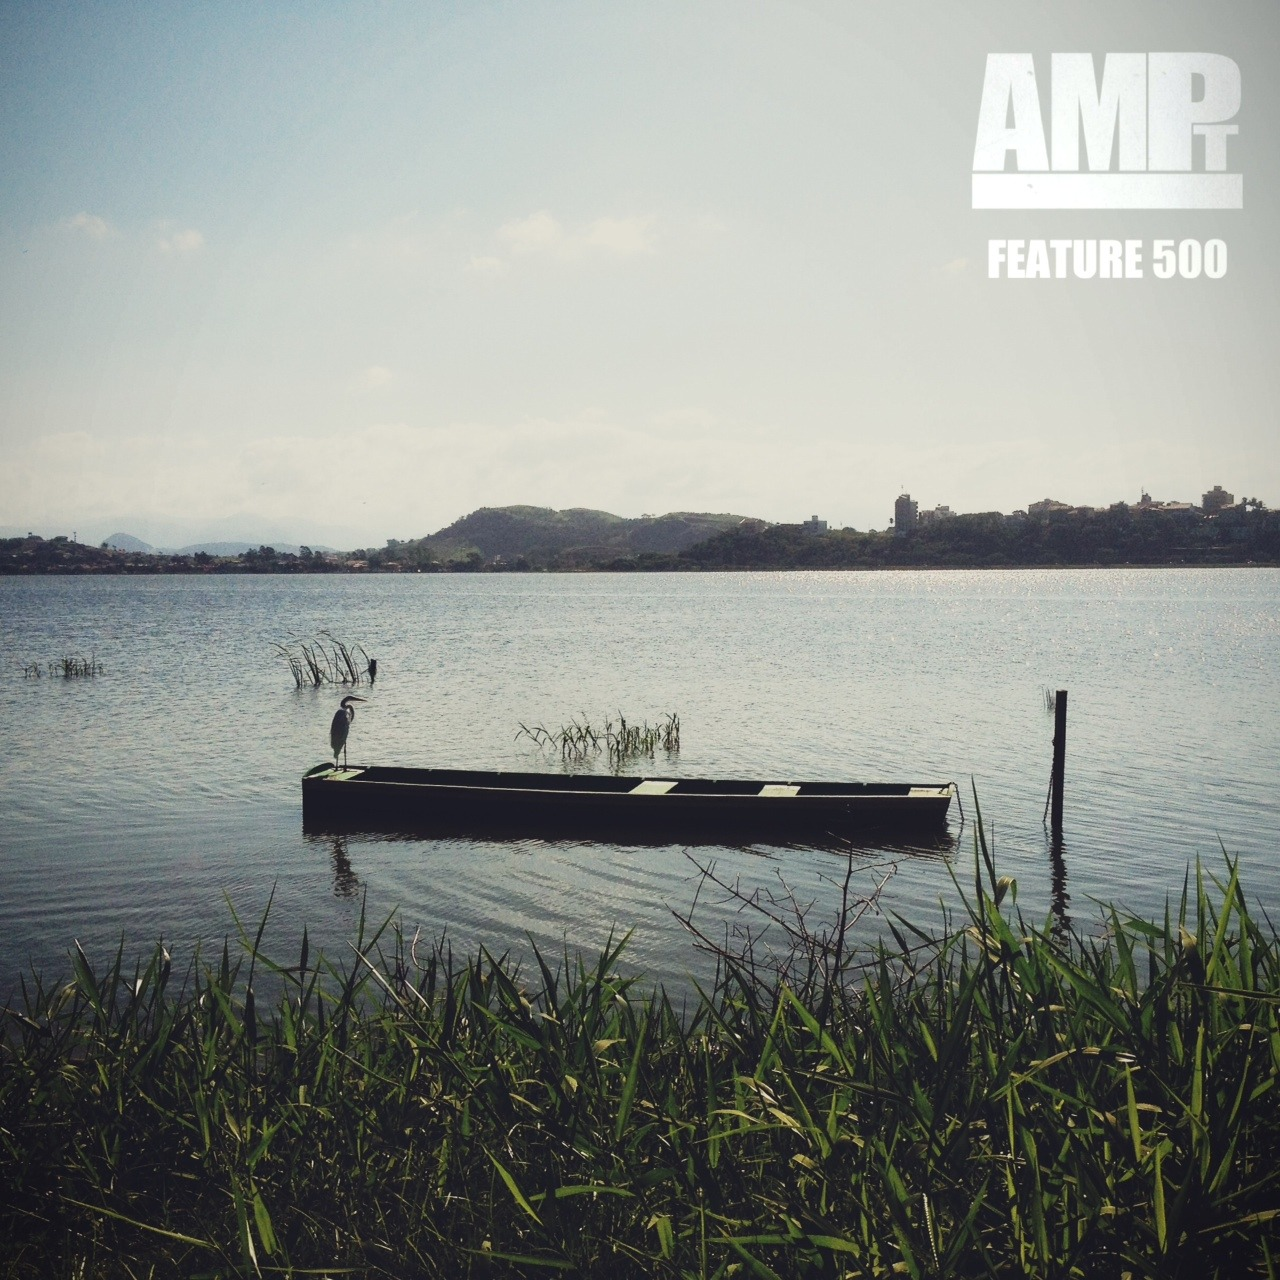 "AMPt Feature 500 photo by Frederico Winter (IG @fredwinter)Description:  This shot was taken in Macaé, Rio de Janeiro, Brazil. I was going to a spot I go often to see an amazing sunset and take some photos of it. When I was almost there I saw this egret relaxing on the boat and decided to stop to take a photo of it. Mother nature have so many beauty to show us. All we have to do is stop a little and appreciate! Instagram helps me beautify my day because I am always looking for something beautiful to take a photo of.Process: This shot was taken using the iPhone 4S native camera. I opened the shot in Photoforge2 to crop and then adjusted curves (did the ""S-curve""). I saved to camera roll and reloaded the image in VSCOcam, applied filter #09, fade +1, contrast +1 and vignette +1. Finally, I exported the edited shot to my Instagram feed.I try not to use many programs, nor apply lots of filters to my shots, due to the loss of resolution and quality of the original photo. Most of my shots are edited with Photoforge2 and VSCOcam. Otherwise, I typically use Camera+ and Snapseed.Bio: I'm a Brazilian lawyer, 28 years old, deeply in love with @nessalacerda and currently living in the State of Rio de Janeiro. I was introduced to mobile photography very recently after Nessa and I bought our first smartphones (two iPhones 4S). She discovered Instagram and started posting photos. I loved her photos and liked the idea of posting some shots of mine. I became an Instagramer a few weeks after her. Since then, I've posted photos almost everyday.View more mobile photography from Fred on InstagramAMPt - Advanced Mobile Photography Team - ampteam.org"